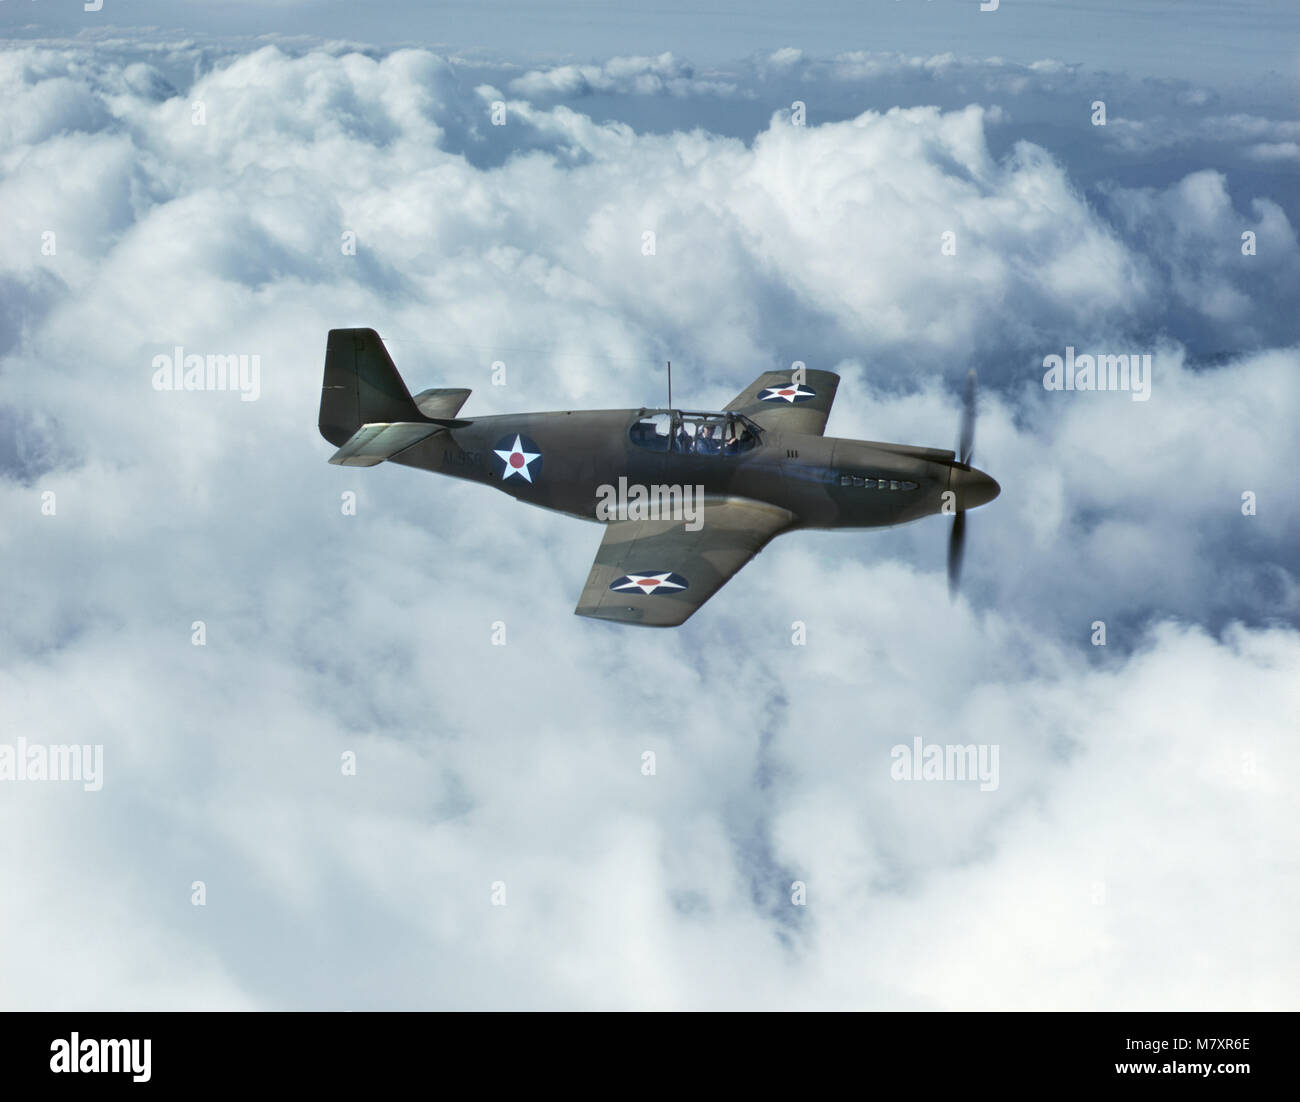 P-51 Mustang Fighter during WWII Training Flight, North American Aviation, Inc., California, USA, Mark Sherwood - Stock Image